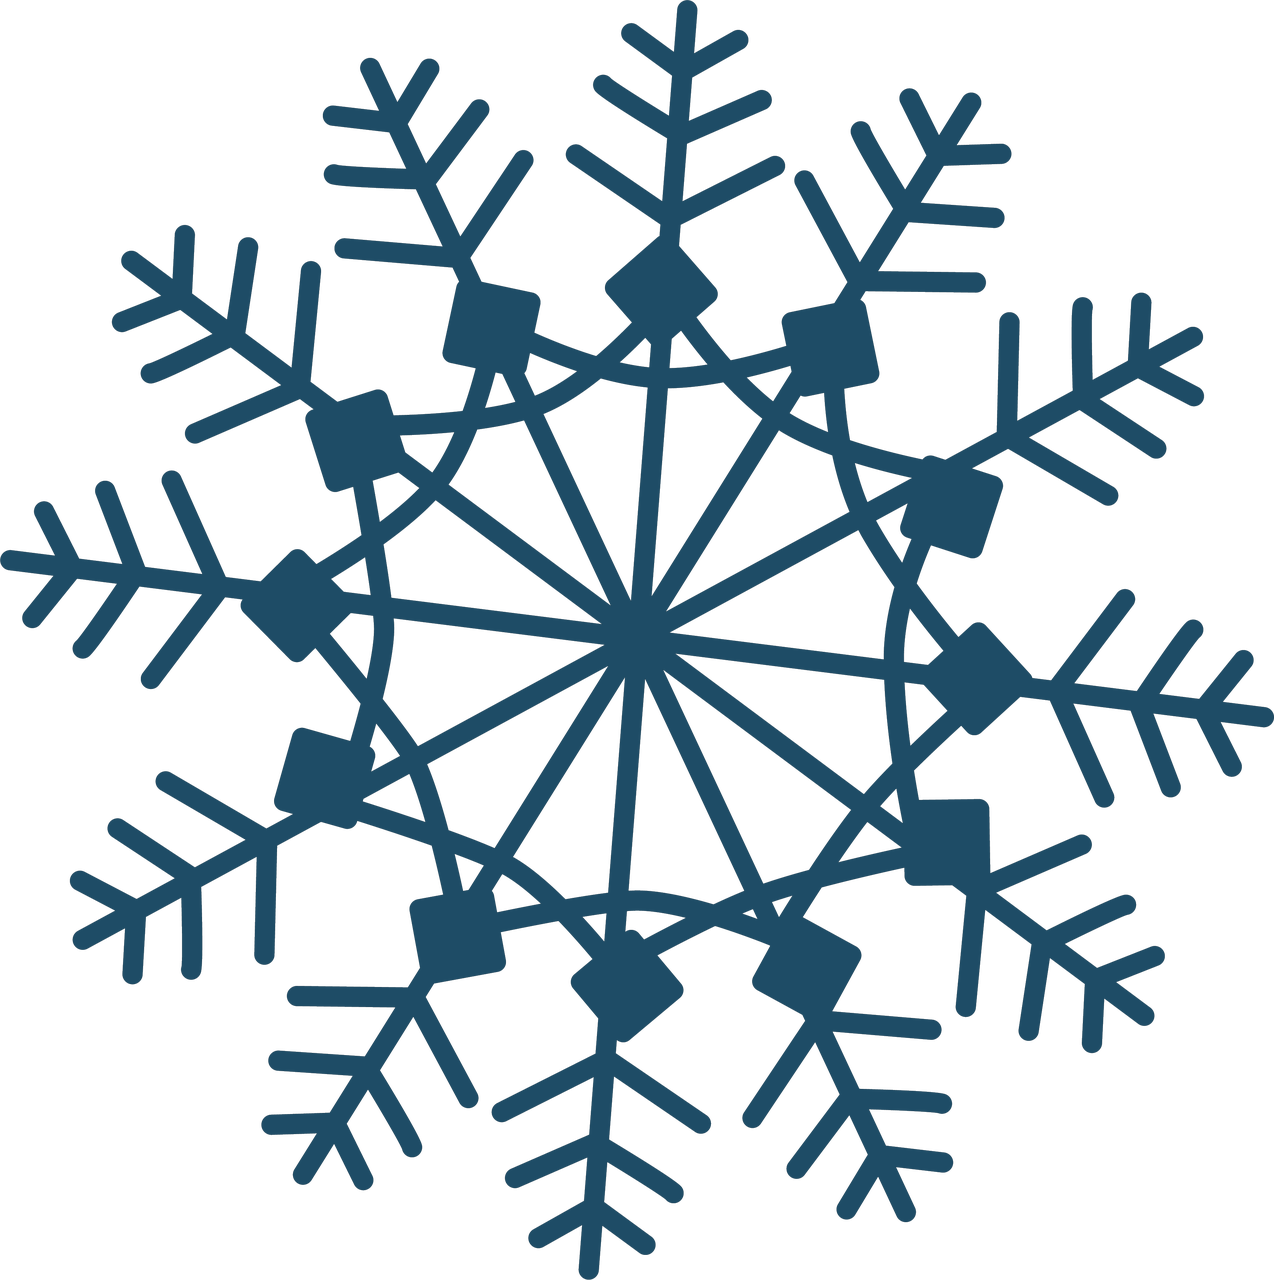 Christmas Snowflake #2 SVG Cut File